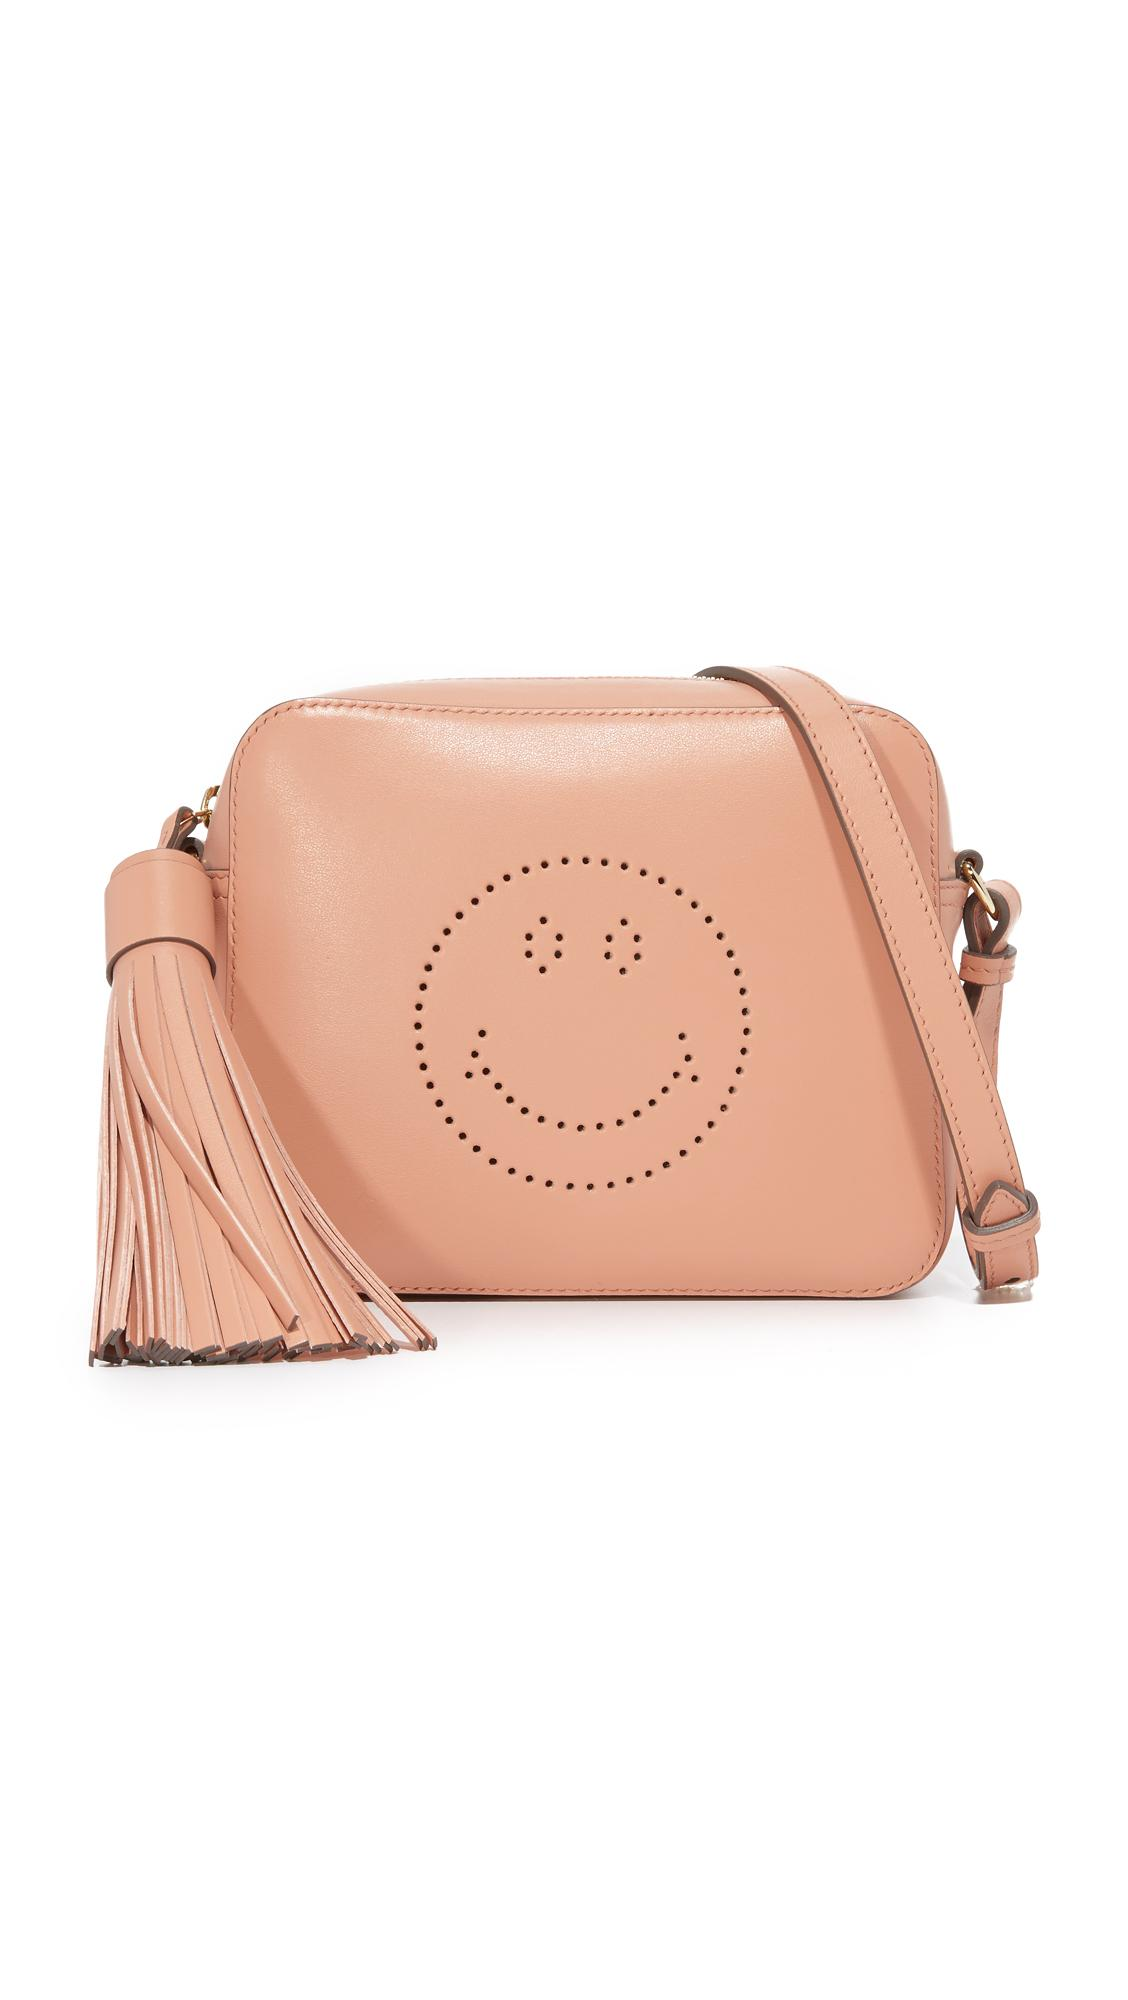 anya hindmarch smiley cross bag lyst